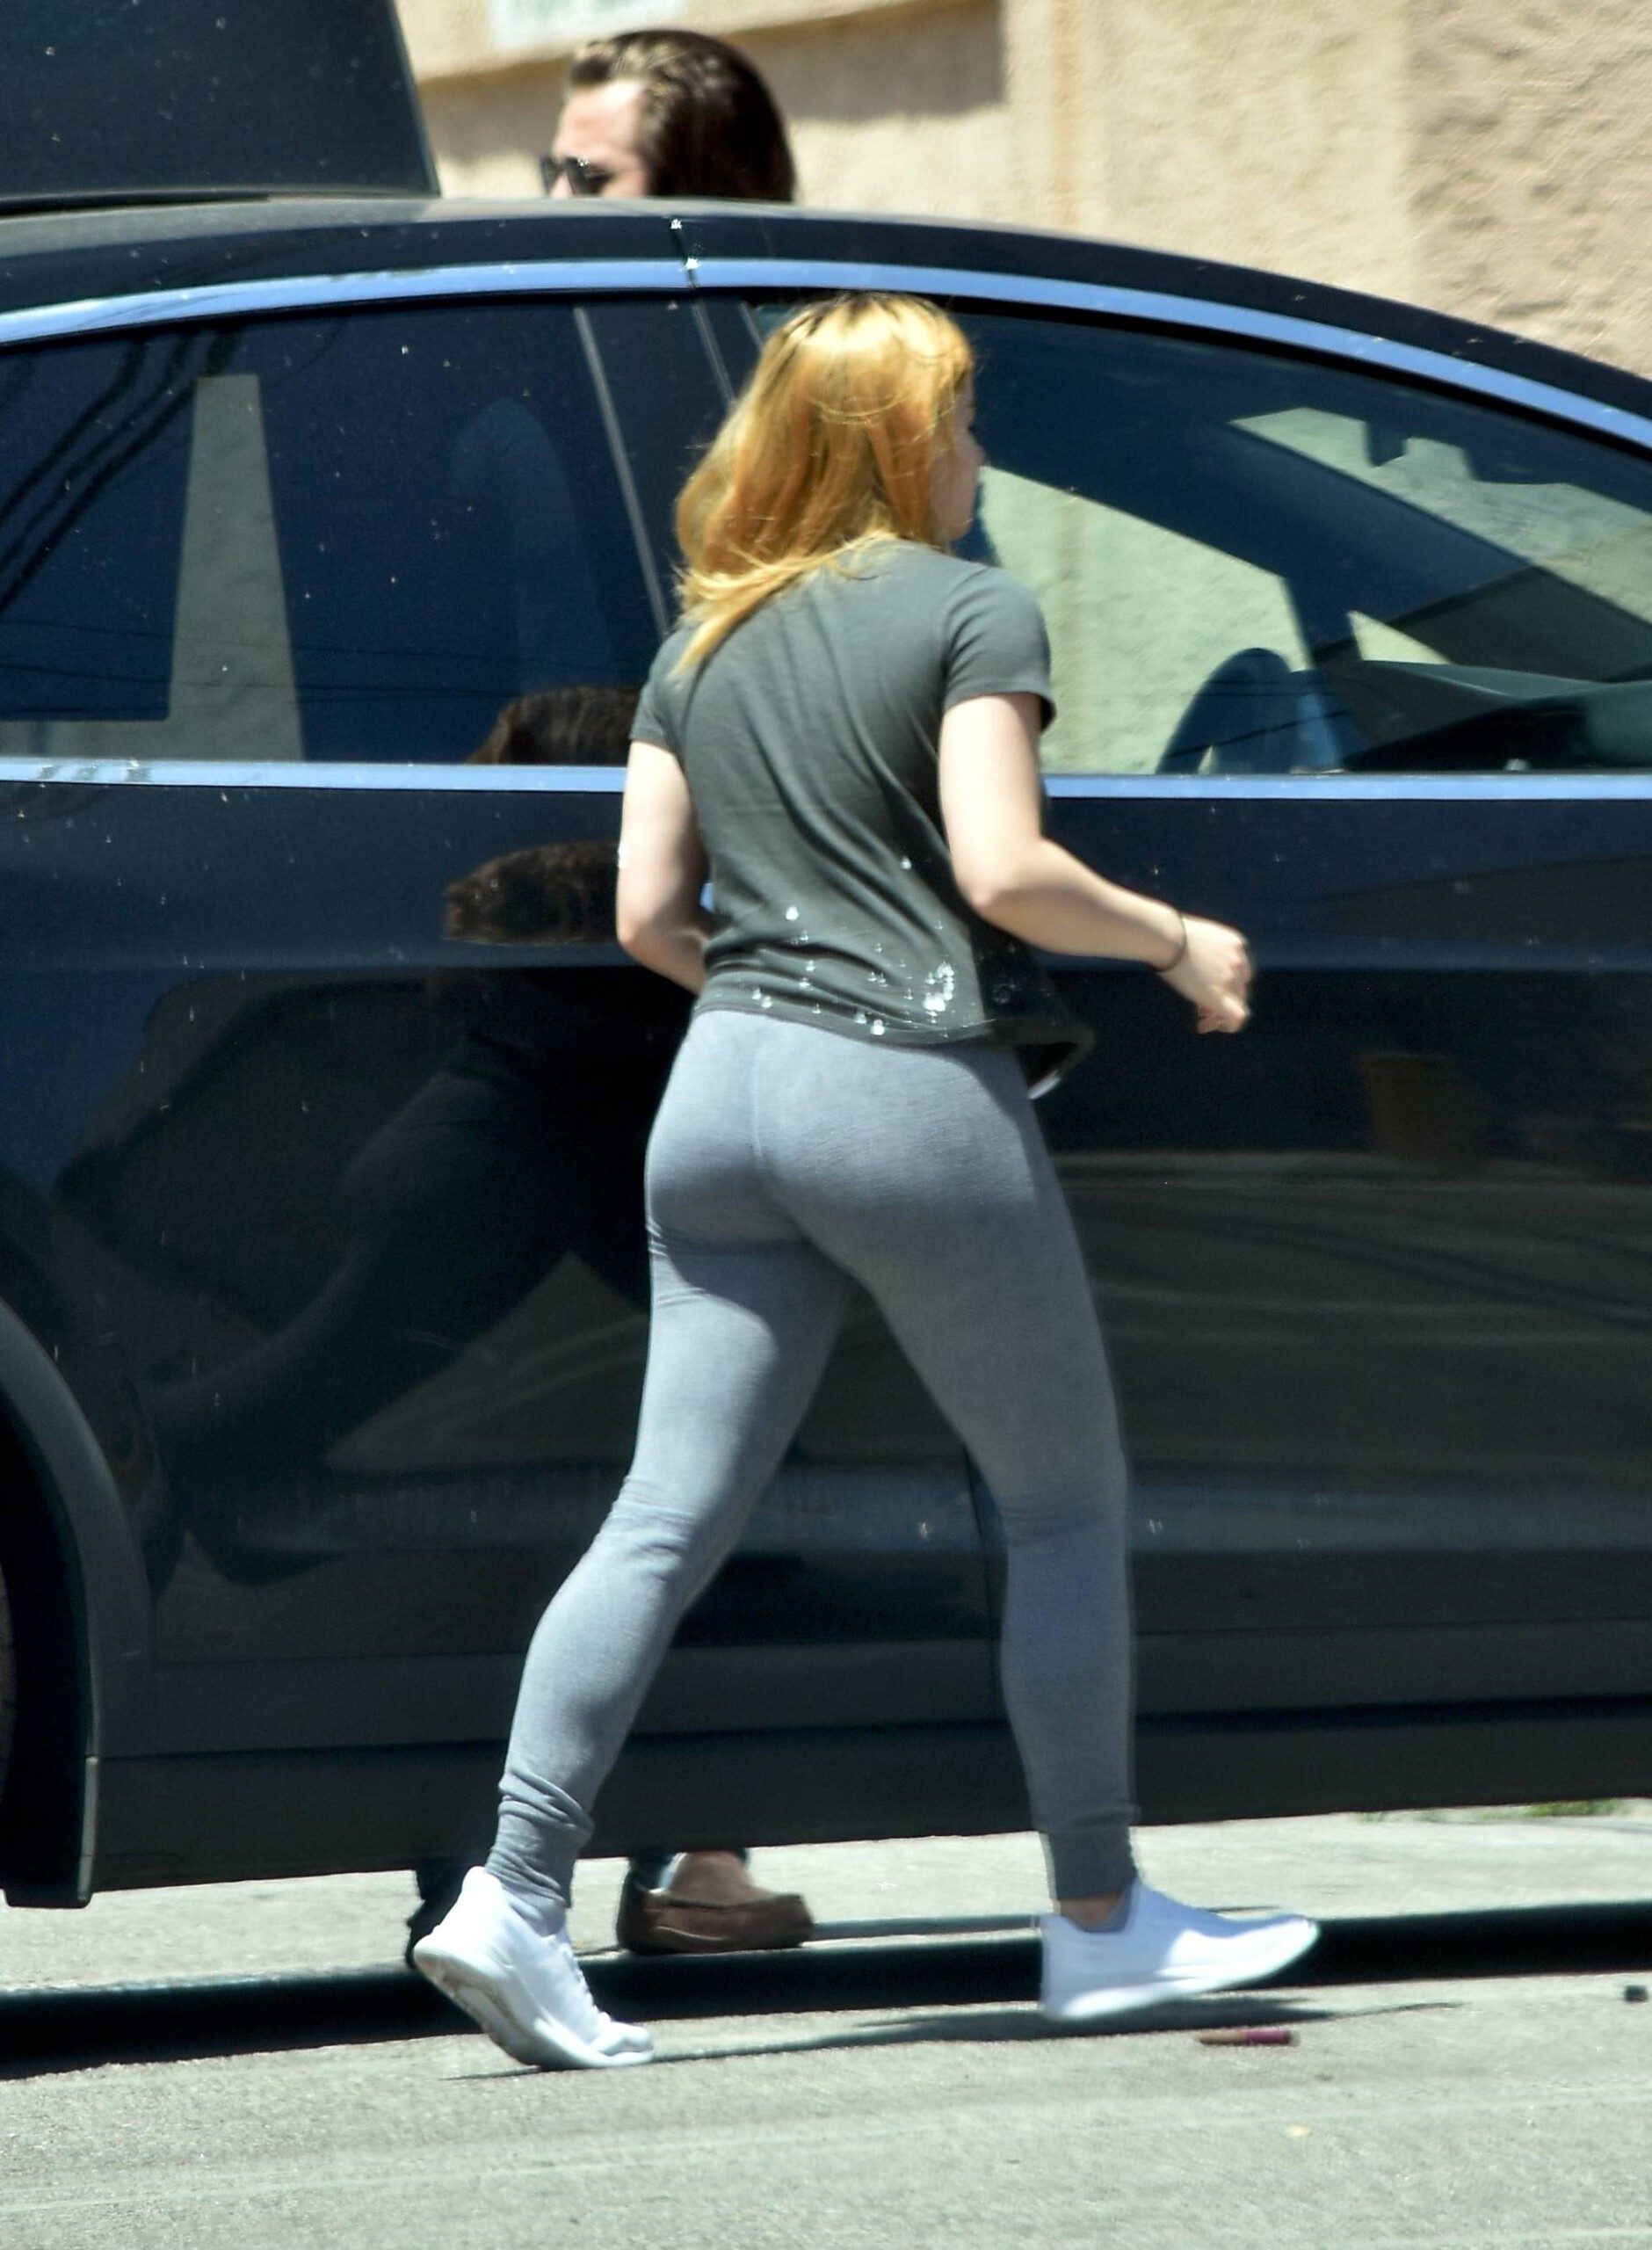 Ariel Winter – Hot Big Ass In Tight Sweatpants Out In Los Angeles 0024